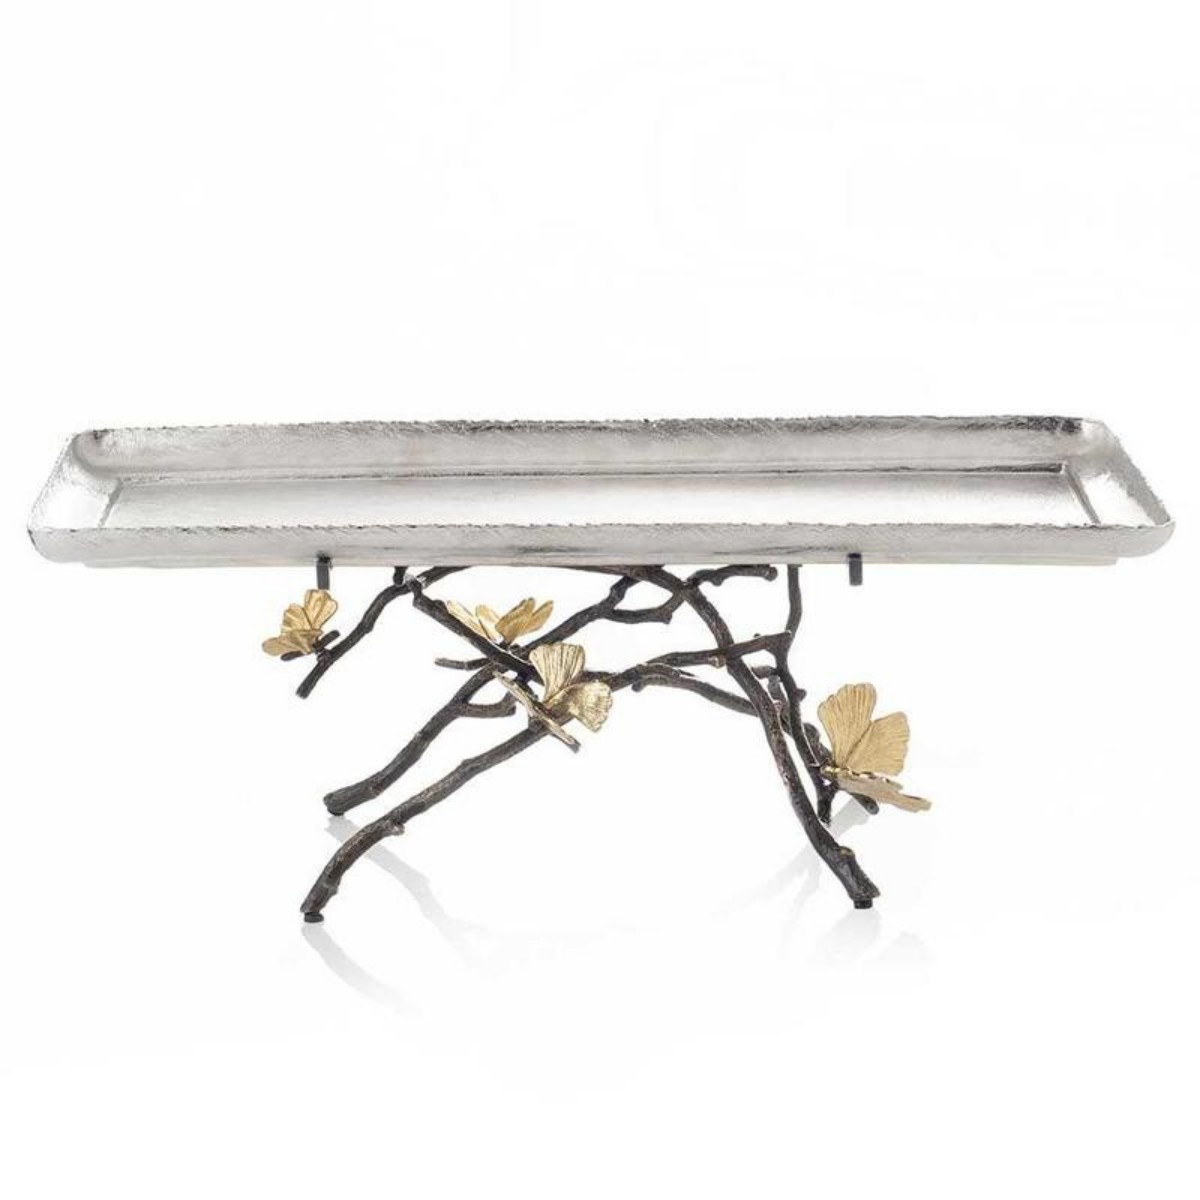 Michael Aram I Butterfly Ginkgo Footed Centerpiece Tray